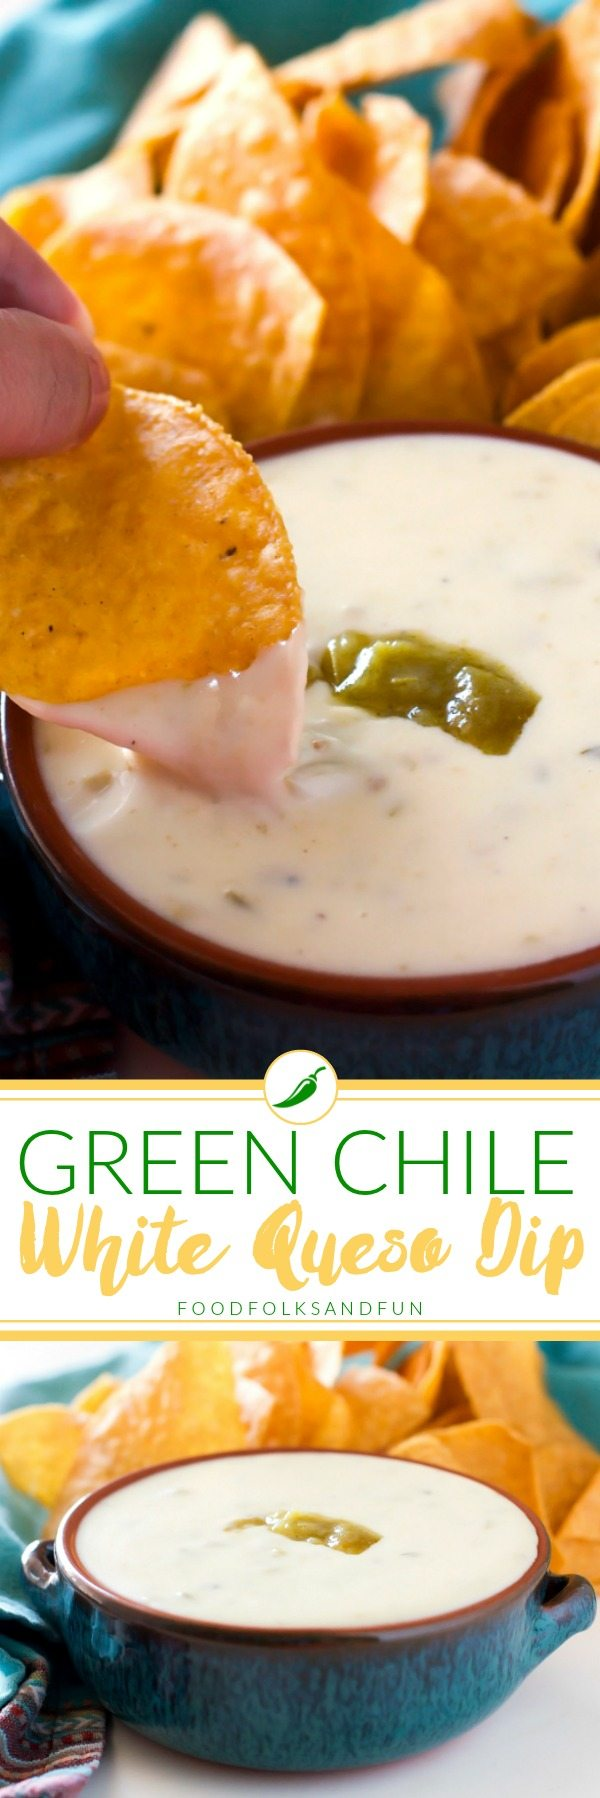 This homemade Green Chile White Queso Dip recipe is incredibly easy to make and SO delicious! All you need is 5 minutes and 5 ingredients! via @foodfolksandfun